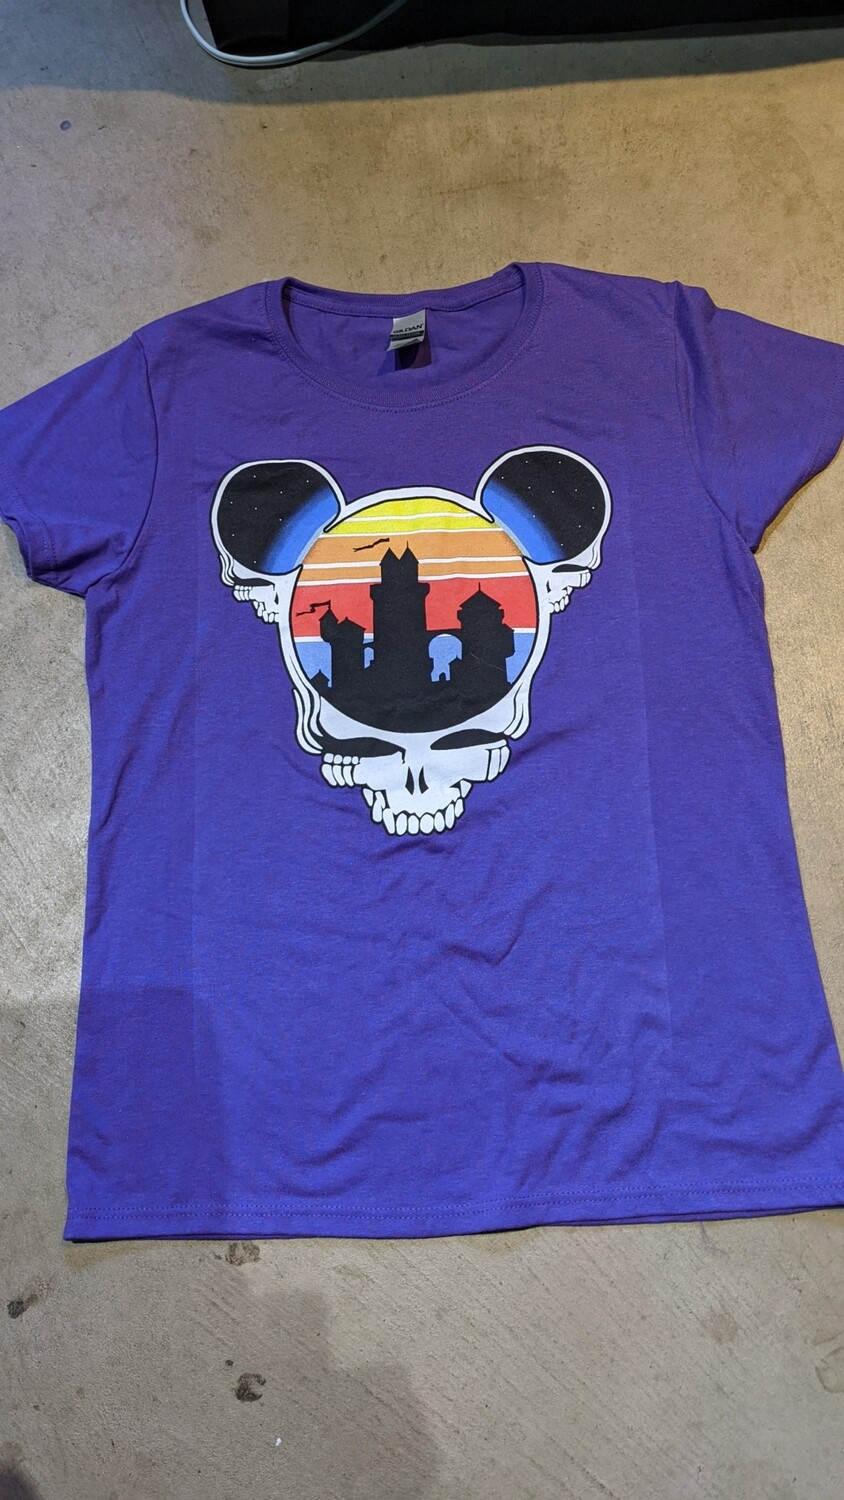 Ladies' SMALL Lilac (purple) Steal Your Ears T-Shirt - short sleeve NO BACK PRINT